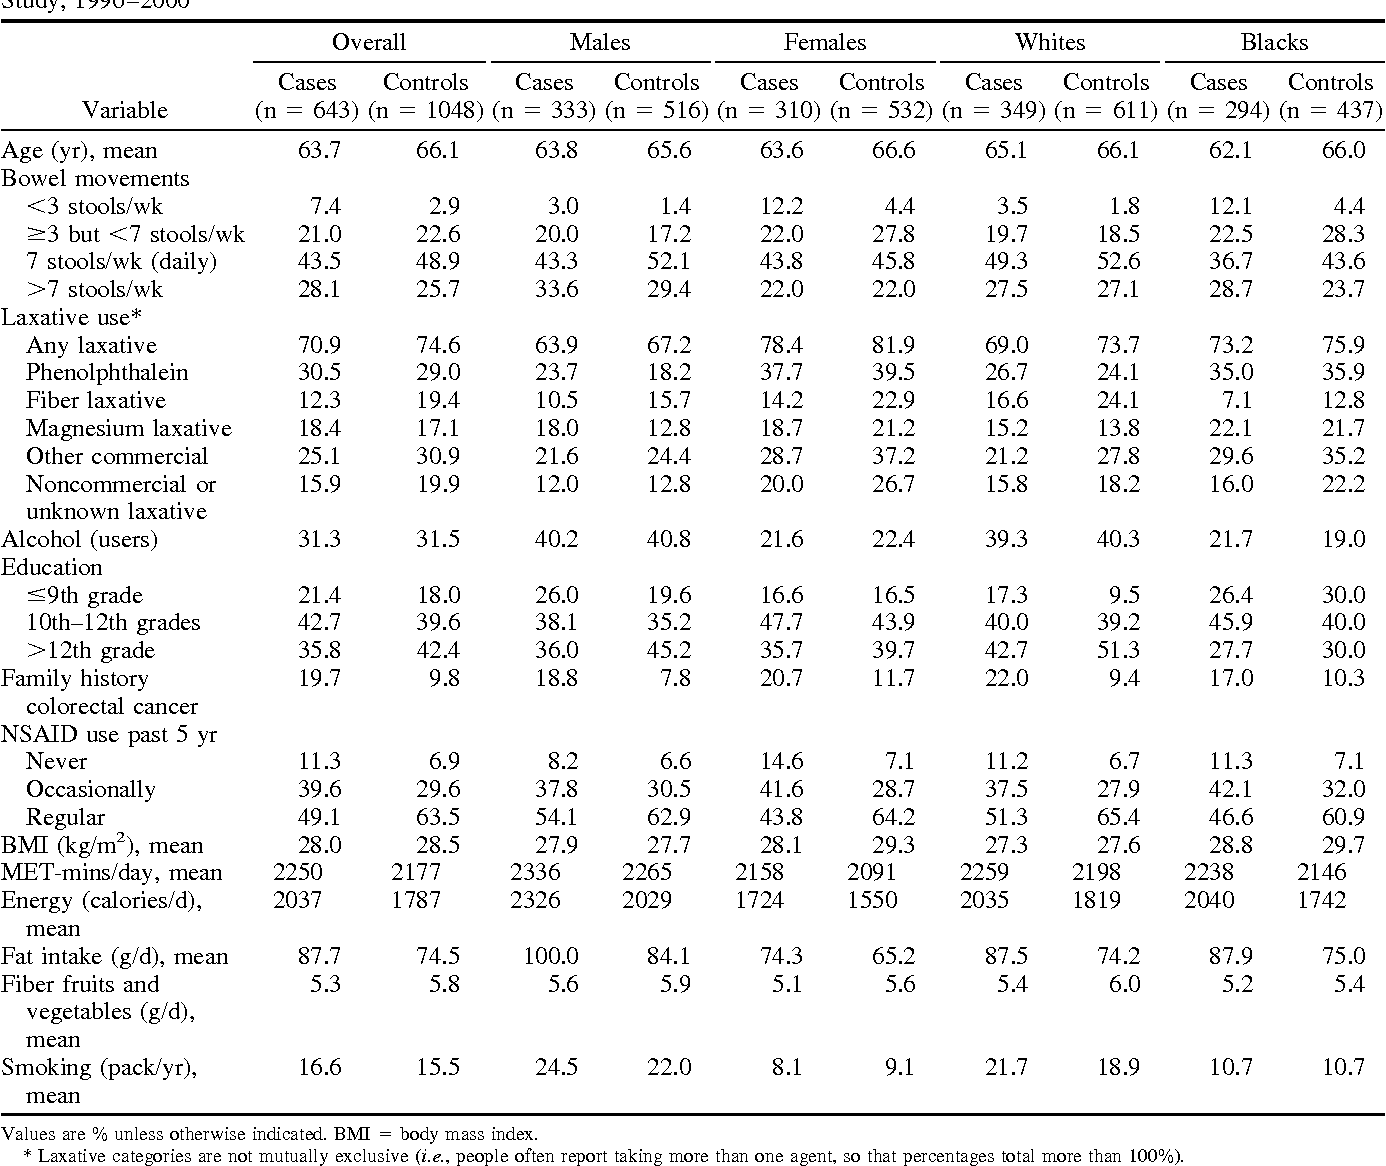 Constipation Laxative Use And Colon Cancer In A North Carolina Population Semantic Scholar